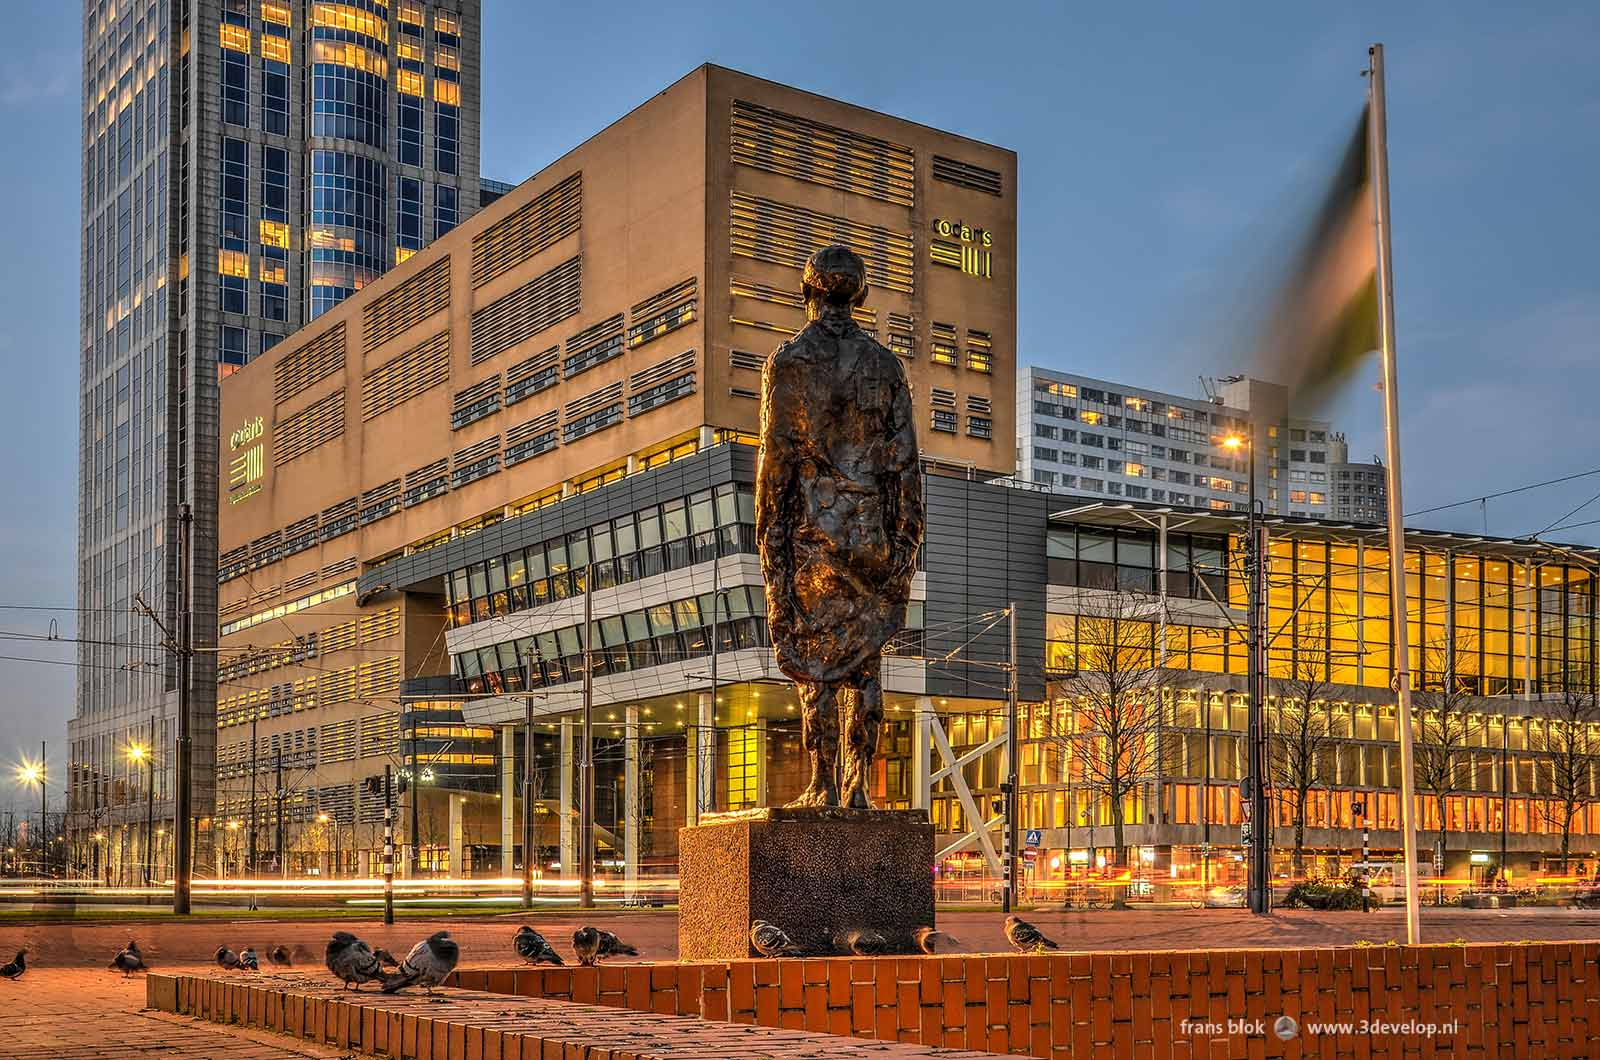 Evening image of Kruisplein in Rotterdam, with stripes from car lights and imperturbablepigeons around the resistance monument